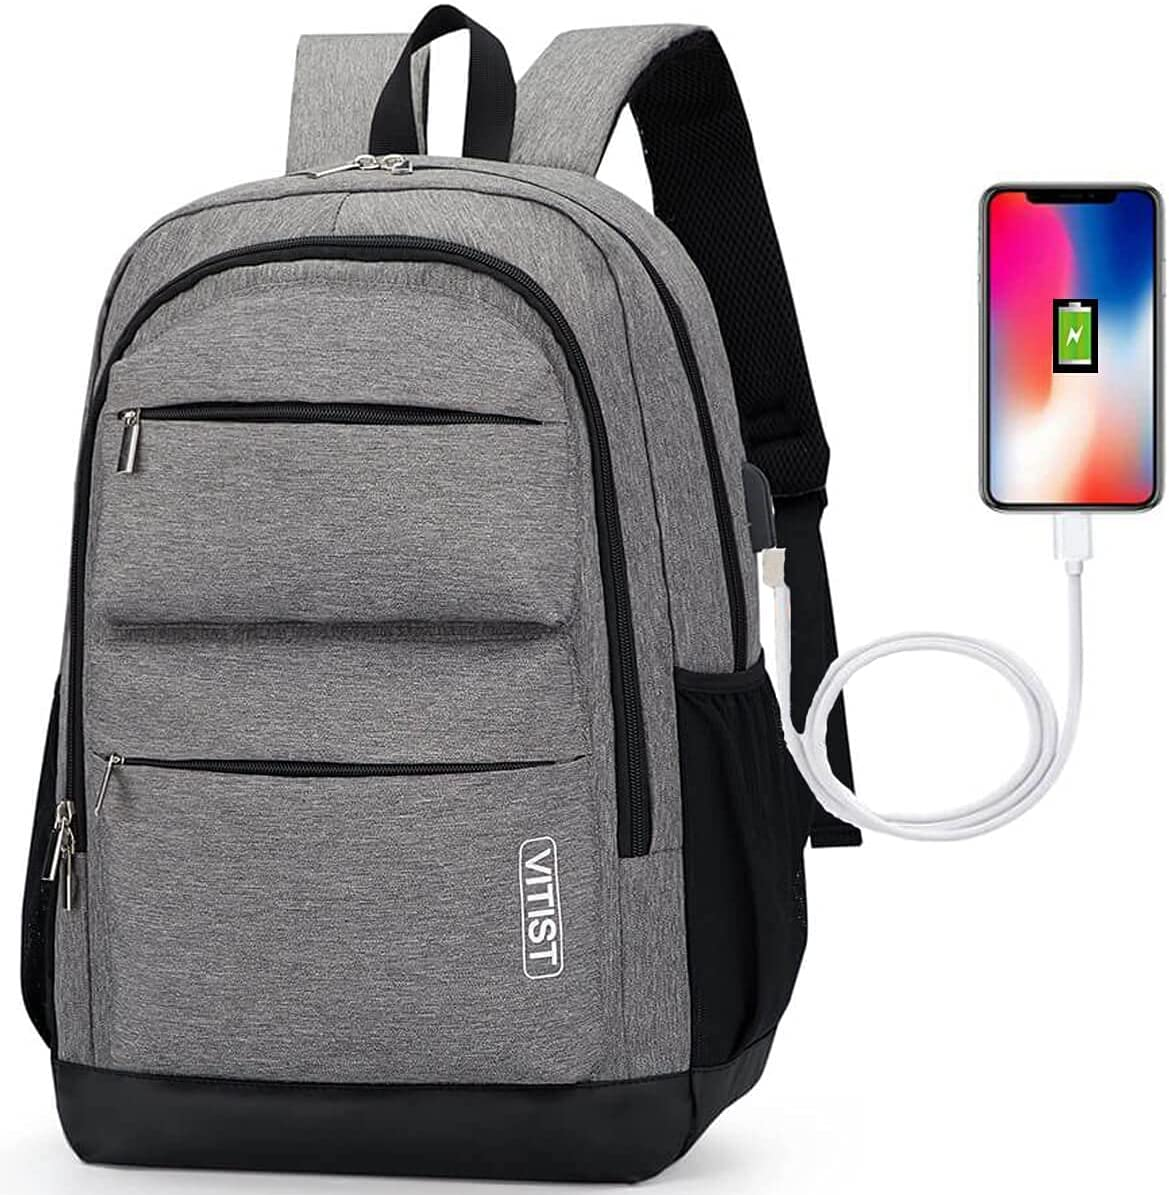 Casual Daypack Backpacks Laptop Backpack Travel Hiking School Backpack Student Backpack Purse Waterproof Business with USB Charging Port Fits 15.6 Inch Notebook Gray